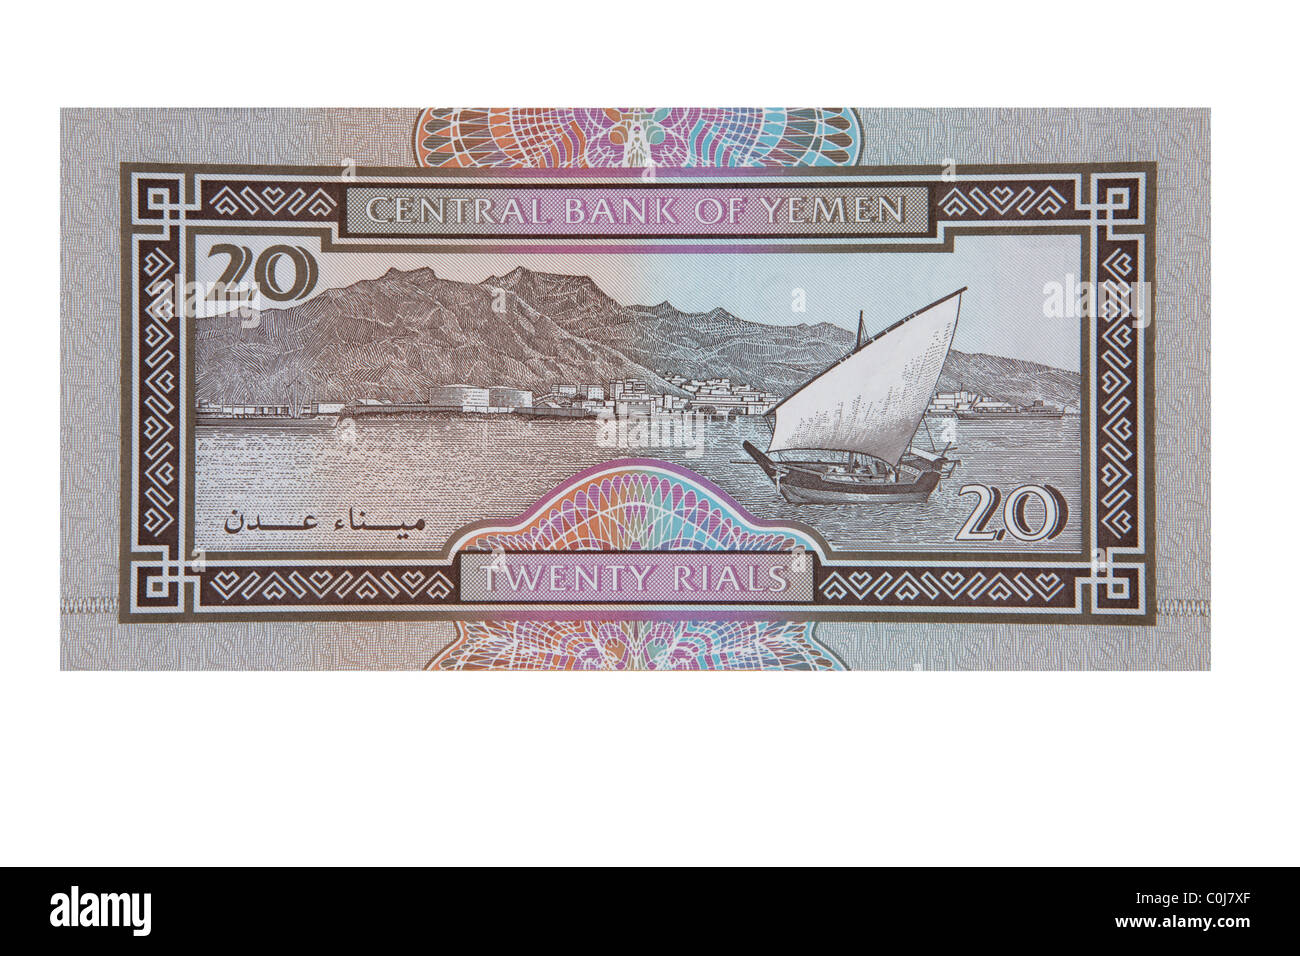 Paper money 20 rial note from Yemen. - Stock Image